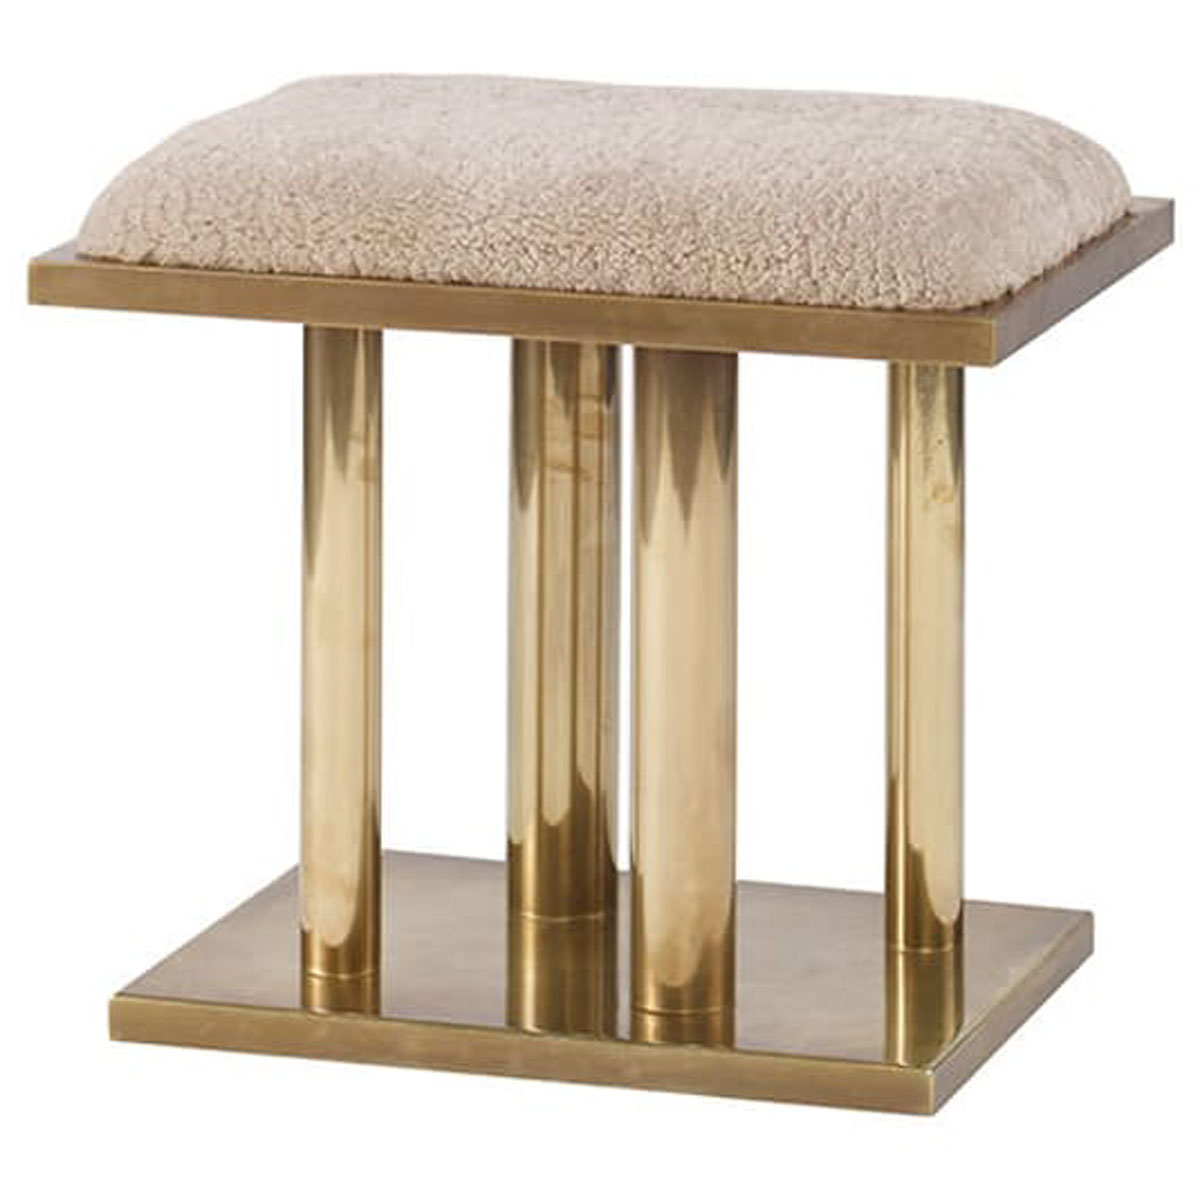 Kelly Wearstler Holmby Stool